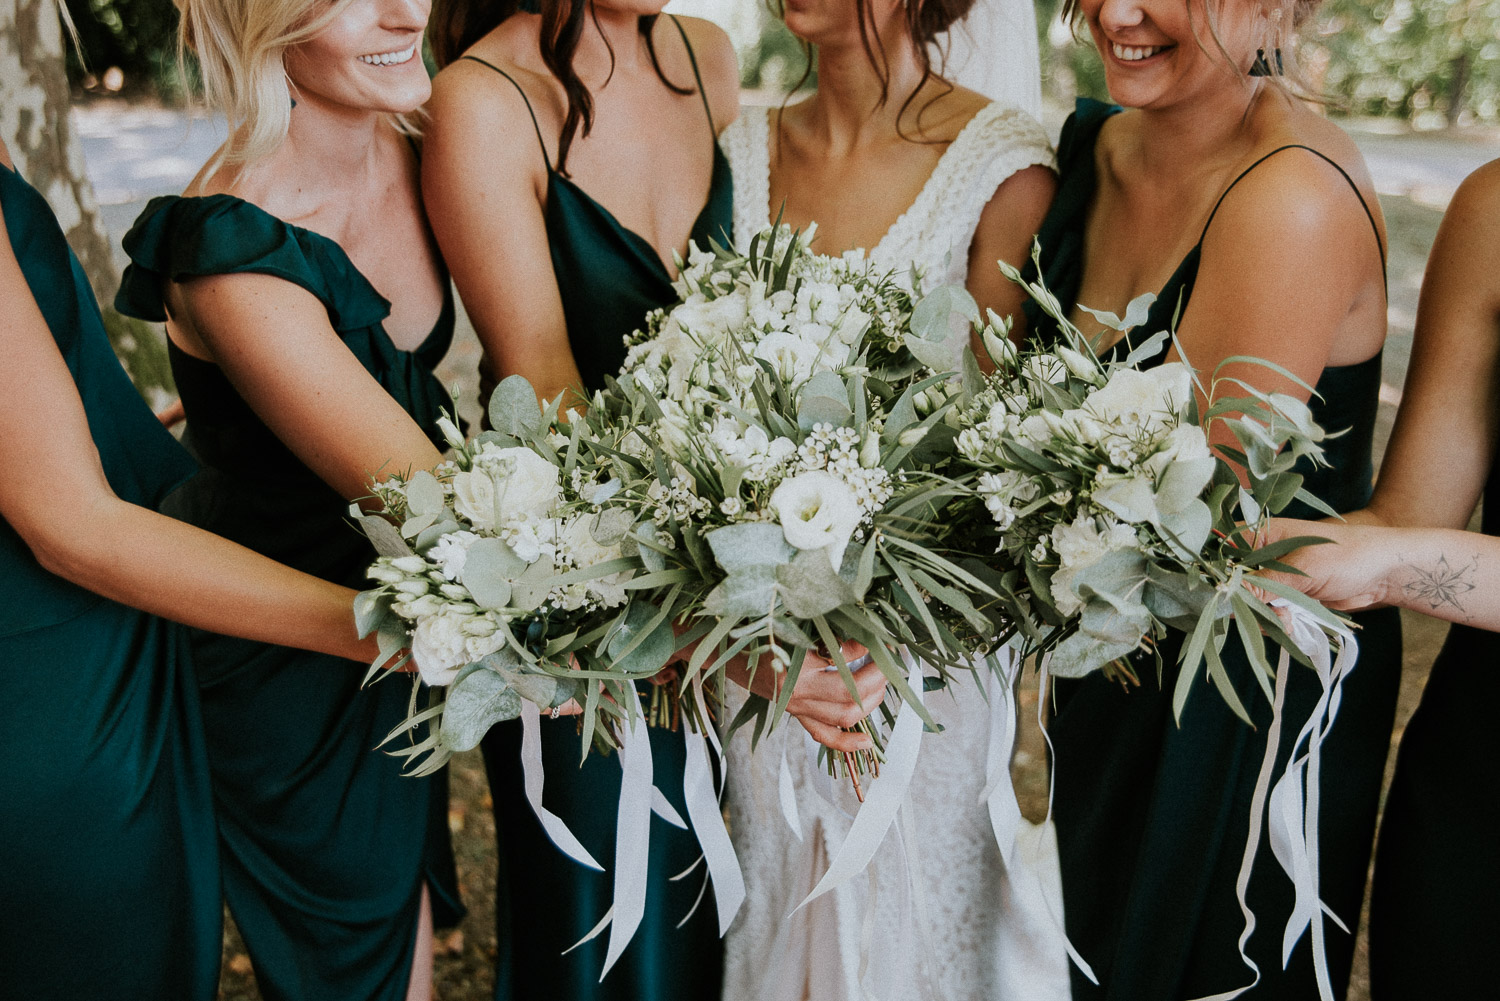 bergerac_wedding_katy_webb_photography_france_UK111